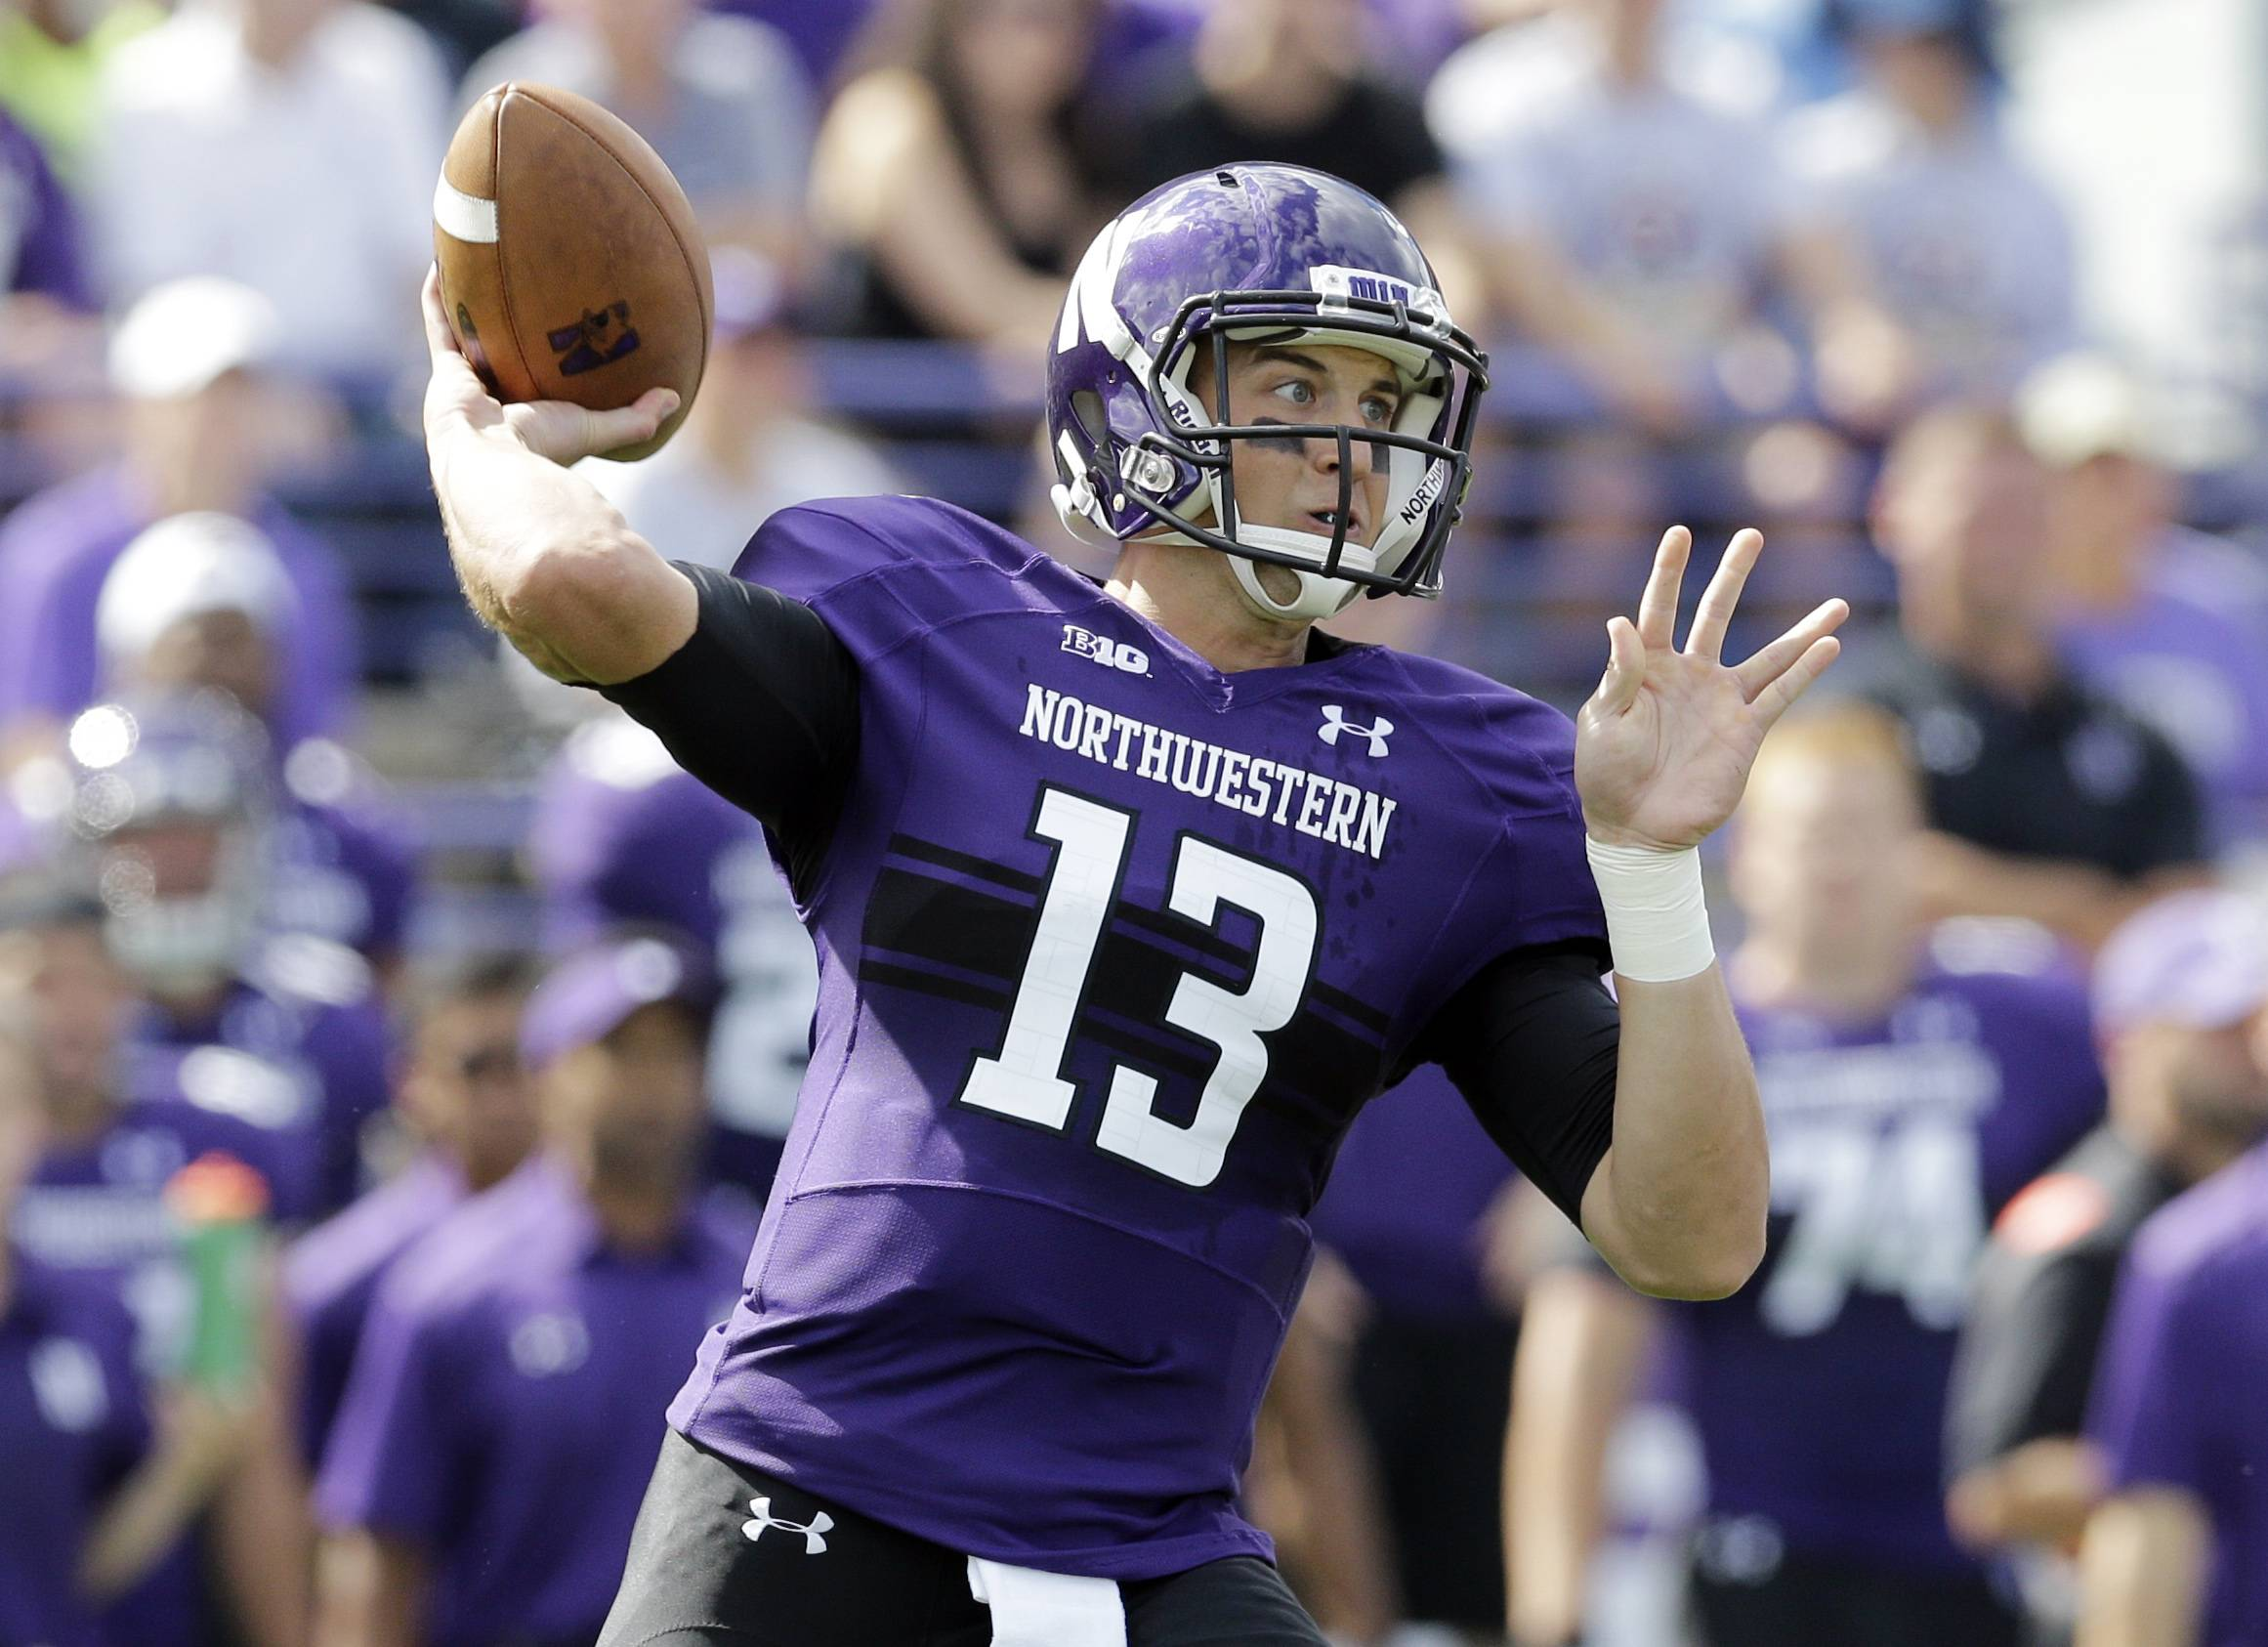 Northwestern quarterback Trevor Siemian (13) looks to a pass during Saturday's game against California in Evanston. The Wildcats lost 31-24.